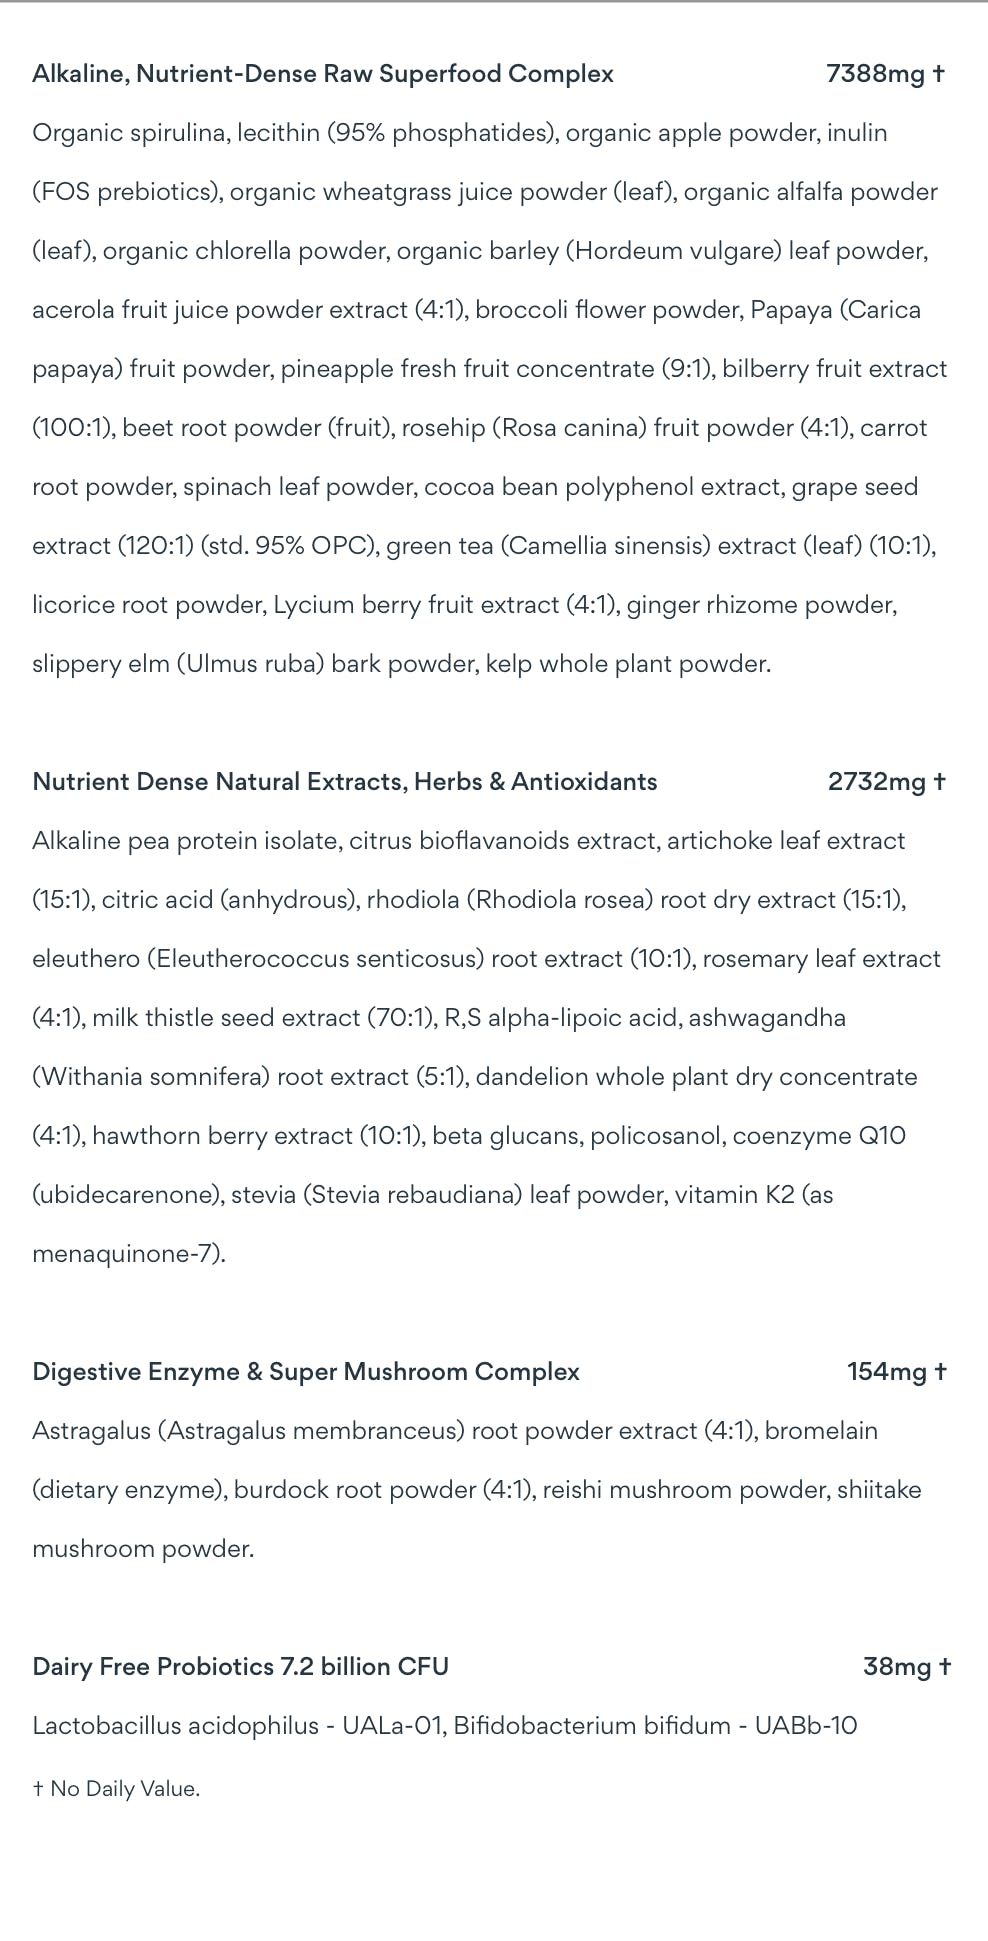 full ingredient list for athletic greens listed on previous image